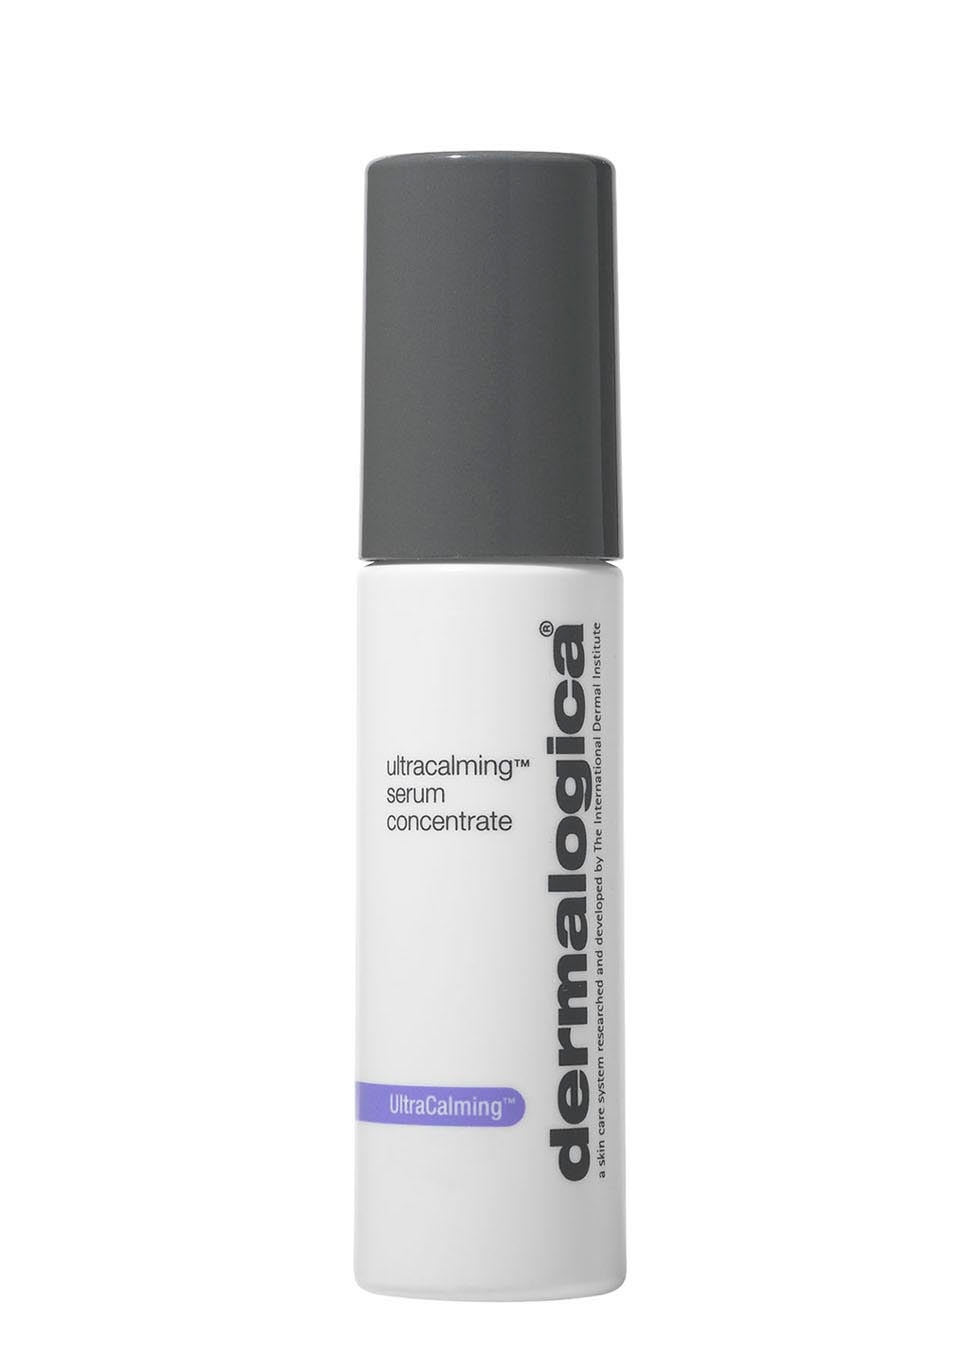 UltraCalming™ Serum Concentrate 50ml